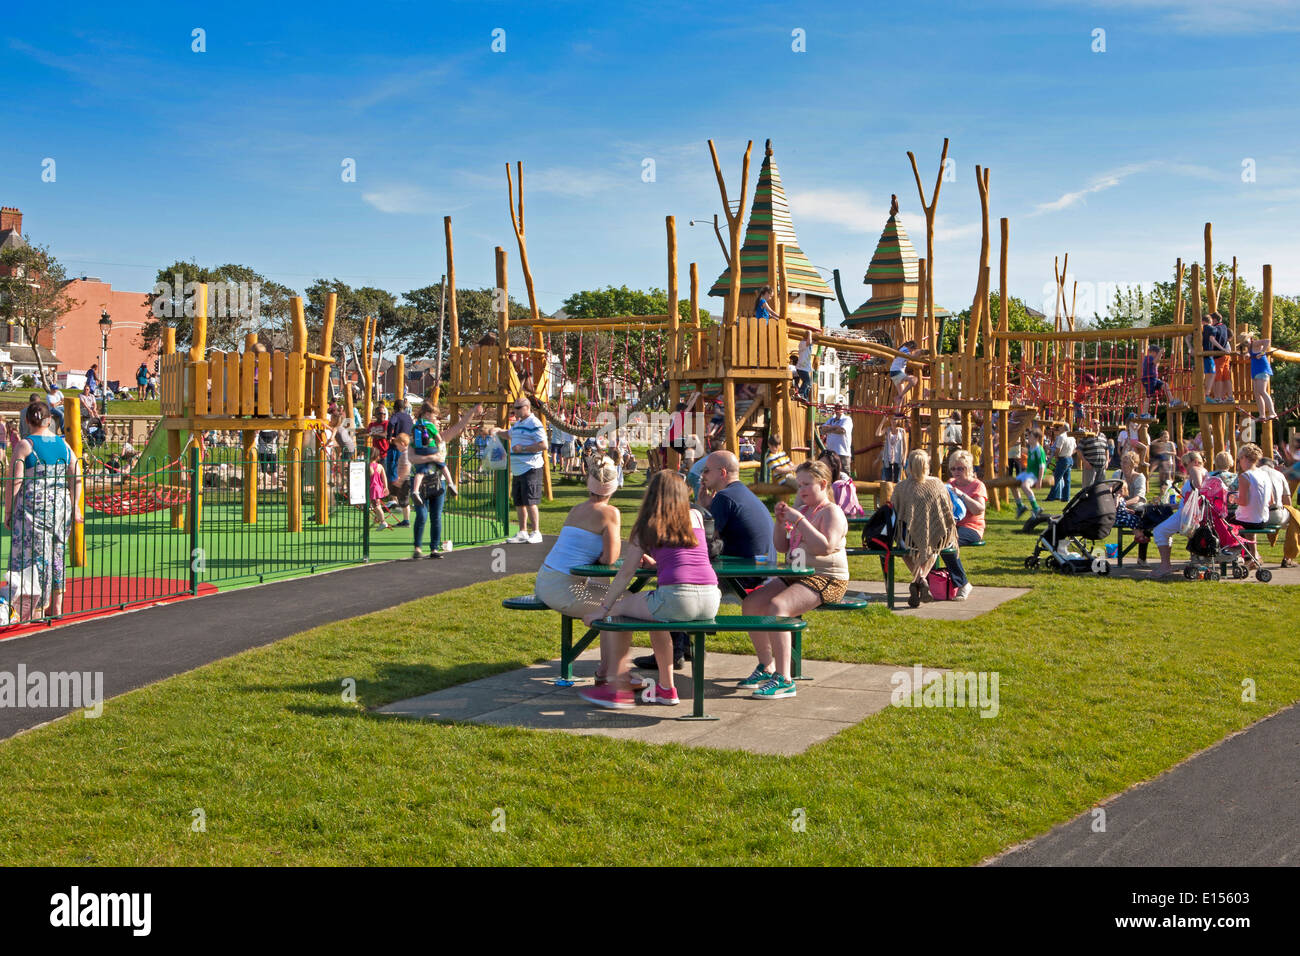 Childrens play area Kings Gardens Marine Lake Southport